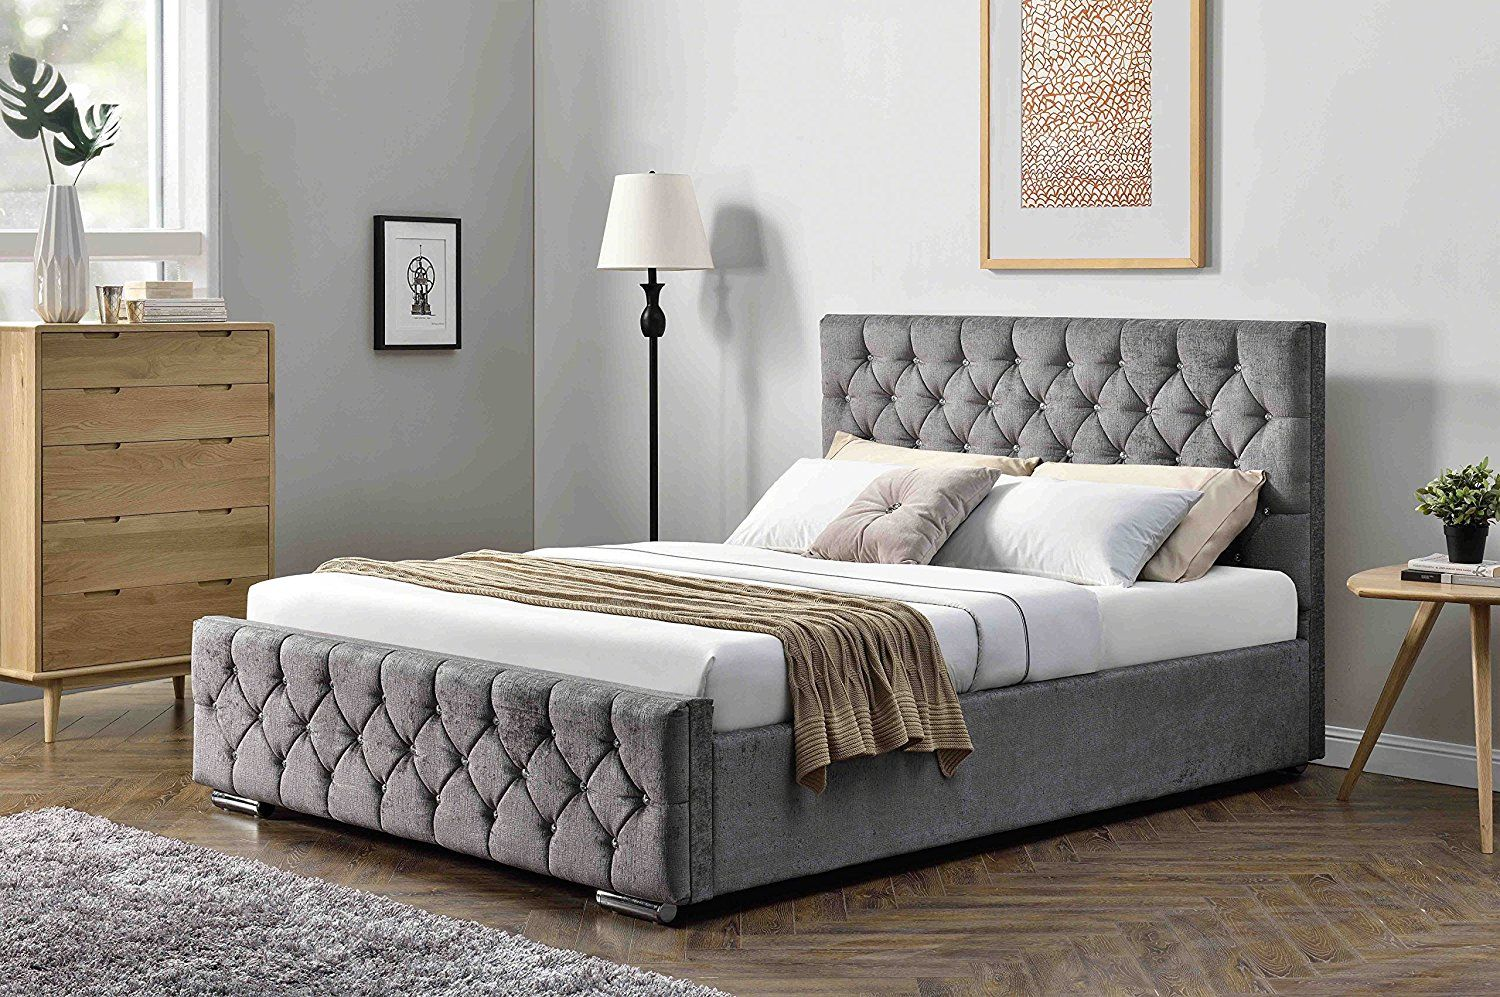 Unmatchable Ottoman Storage Diamond Design Upholstered Bed Frame In Velvet Or Chenille Available In Double Or Upholstered Bed Frame Ottoman Bed Storage Ottoman